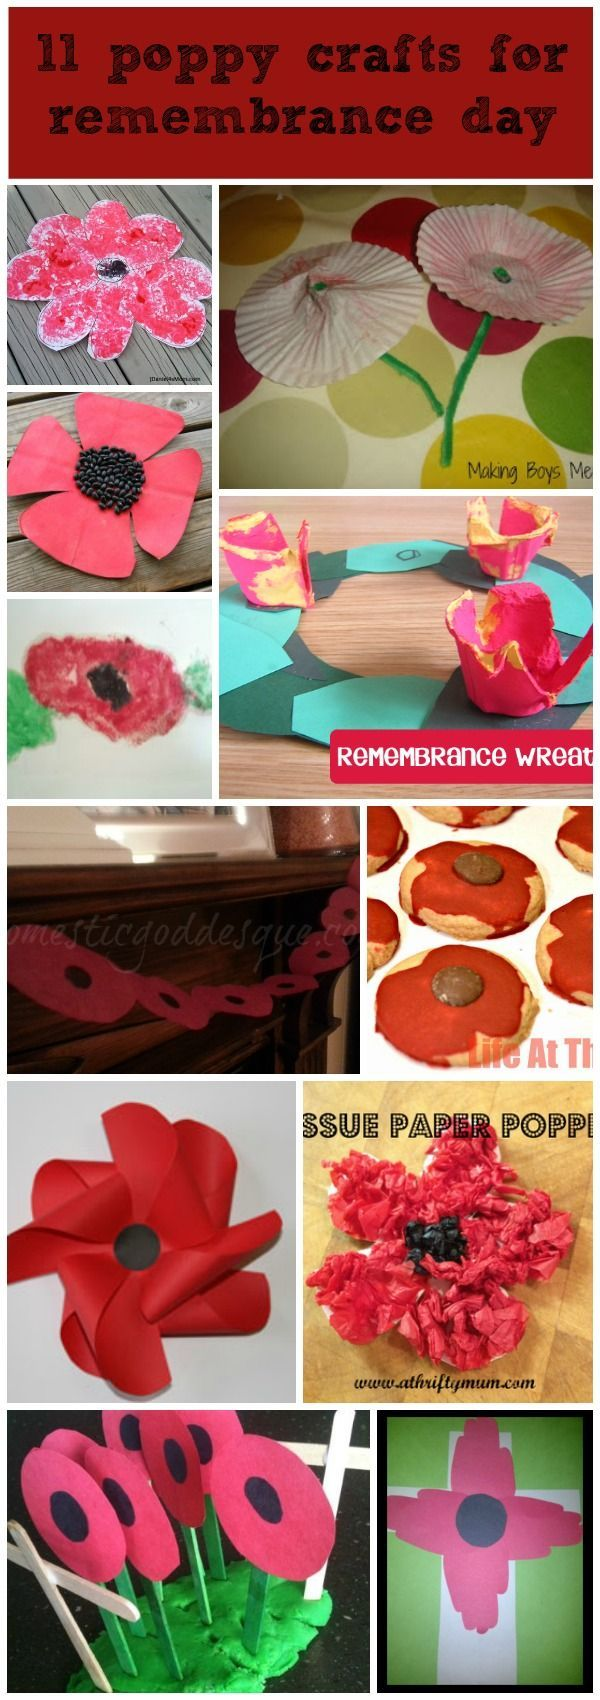 11 poppy crafts, art or food for remembrance day – Mum In The...